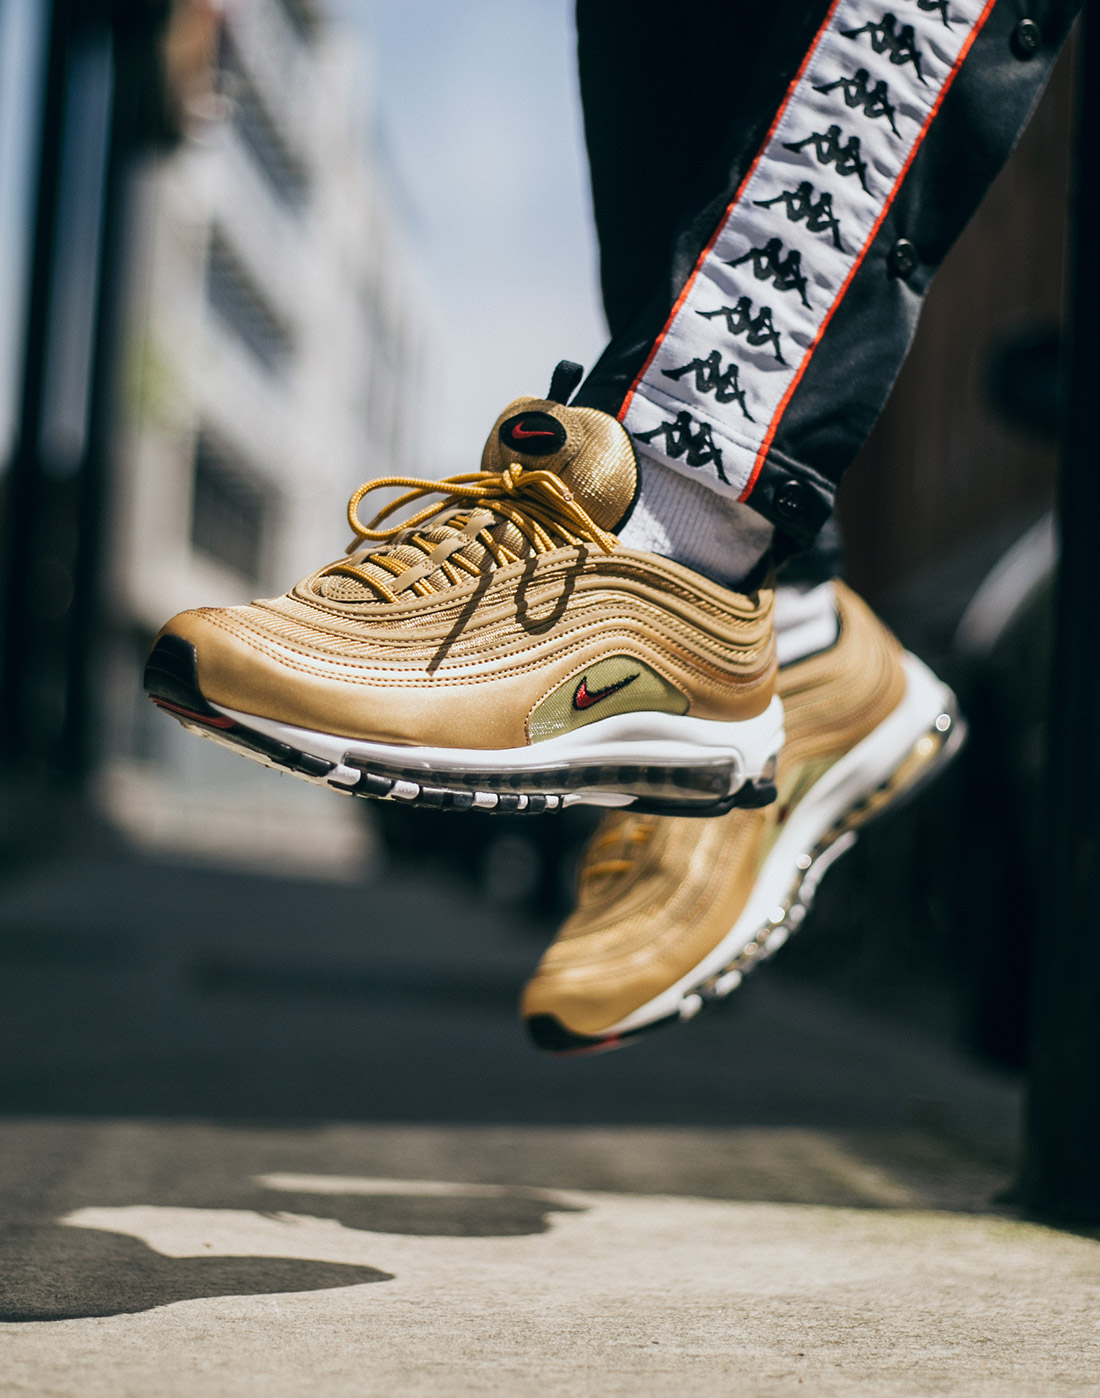 e7efc883270 discount nike air max 97 ultra og metallic gold 918356 700 02a01 62cb1;  clearance mens air max 97 og ab20e 5d54d